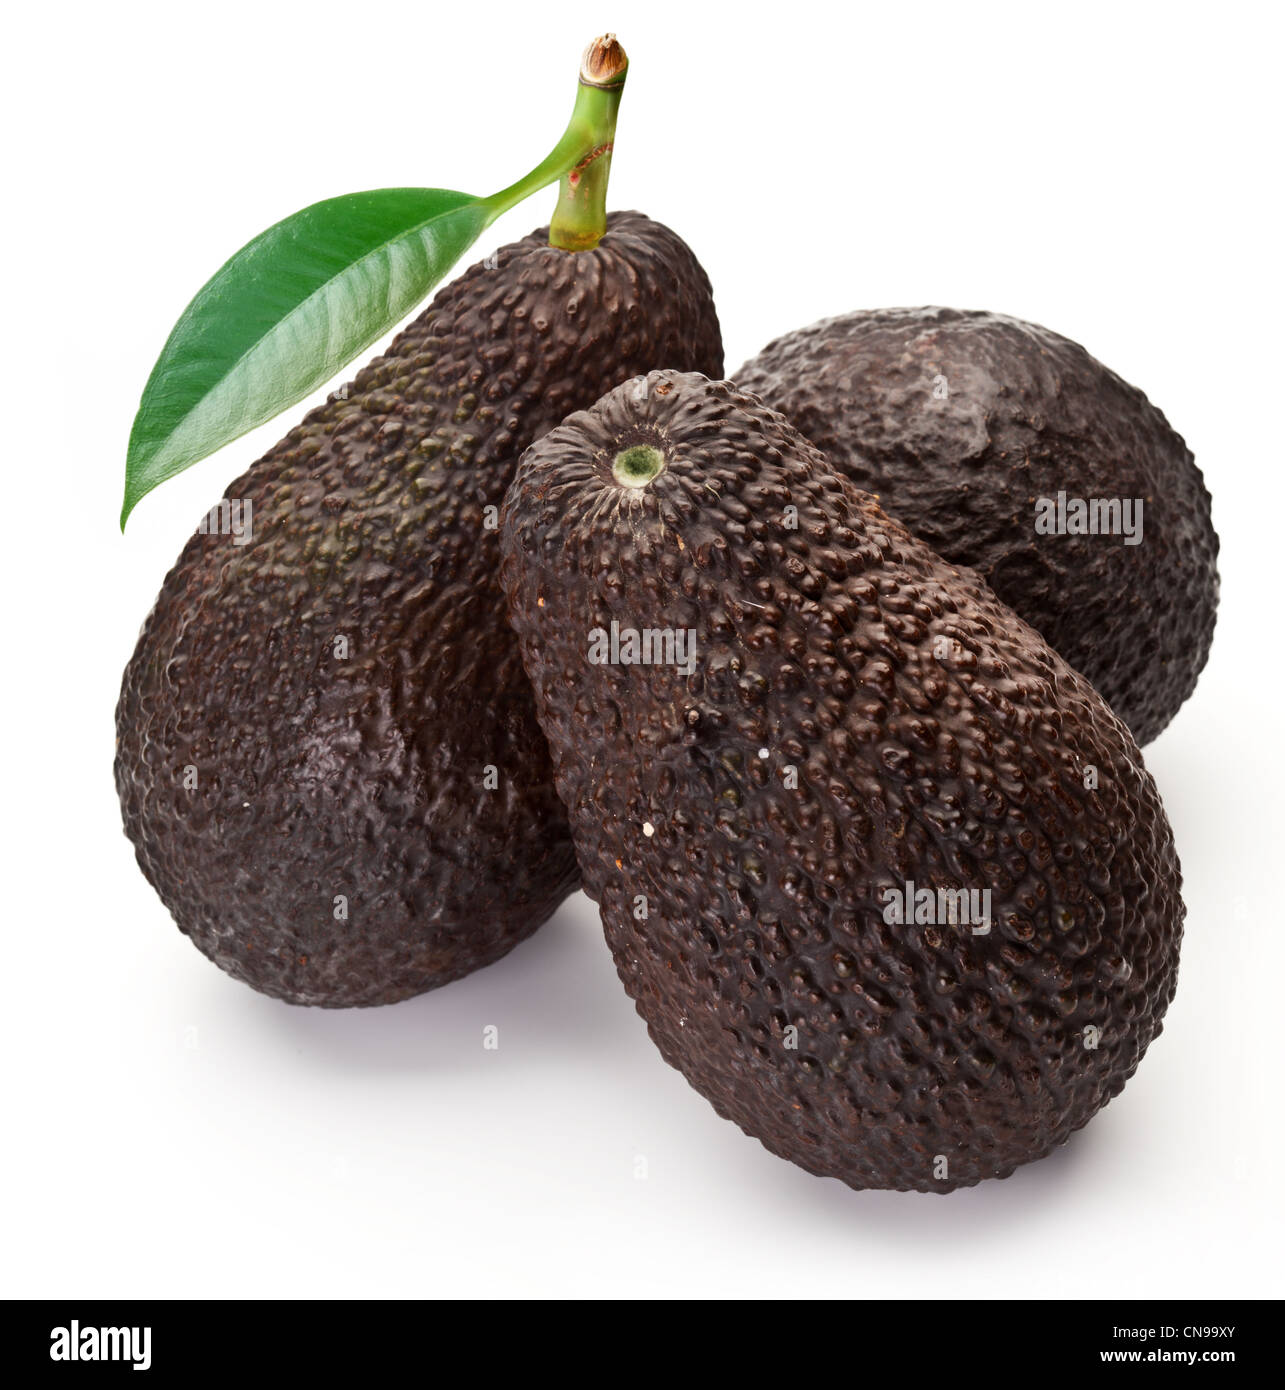 Avocados with leaves on a white background - Stock Image